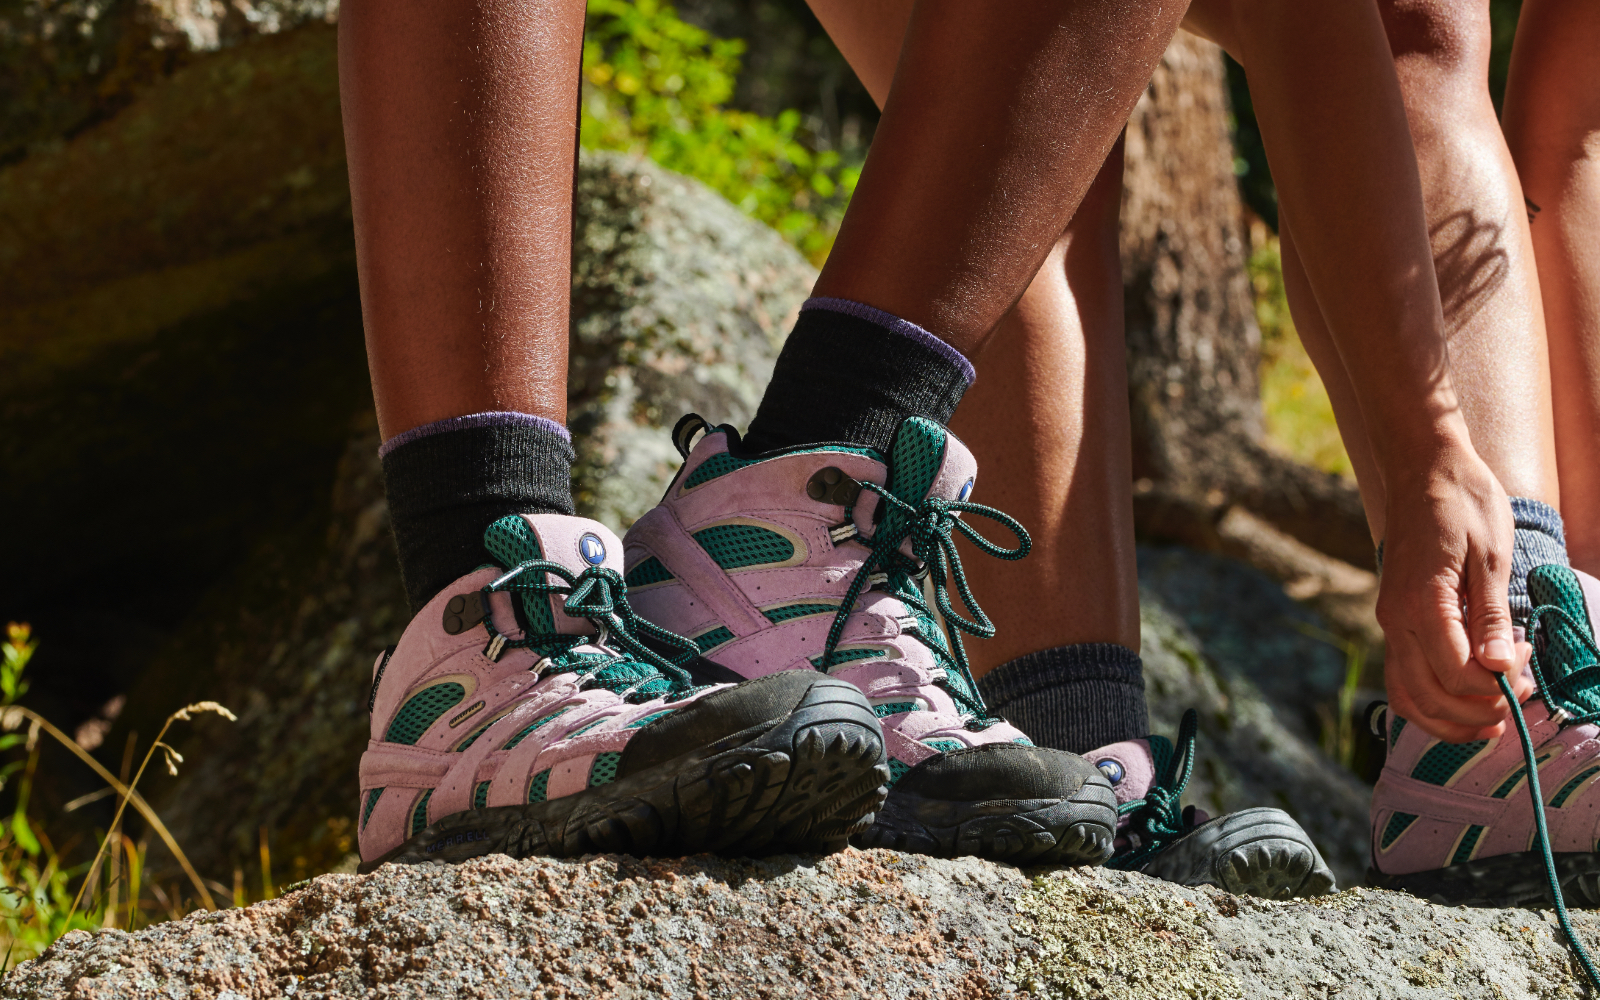 Color of Its Best-selling Hiking Boot